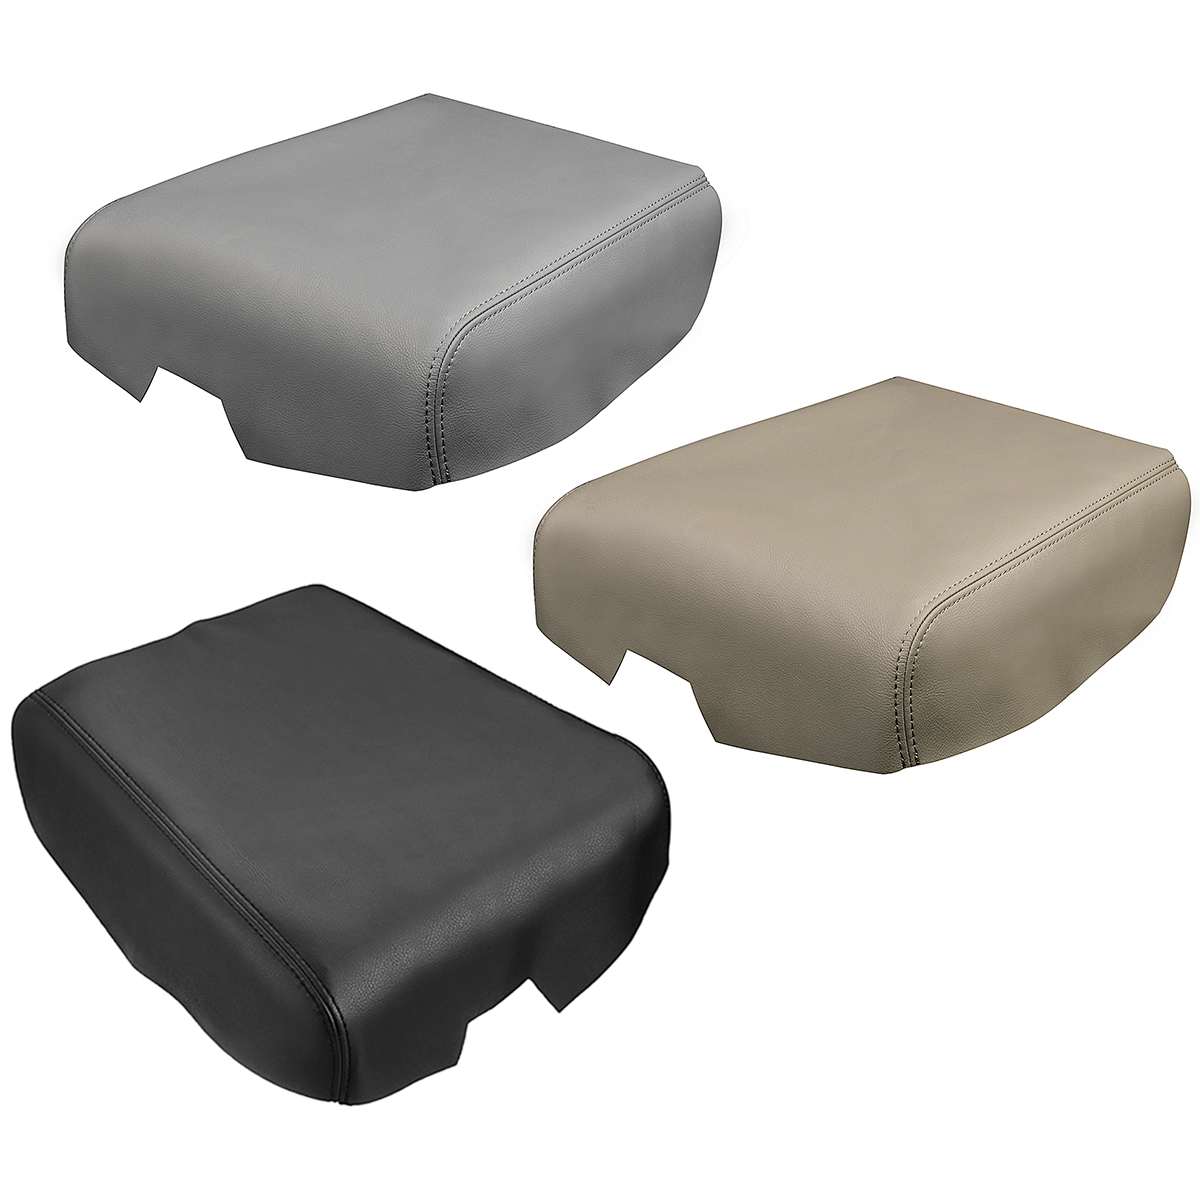 1 Pcs Leather Car Armrest Center Console Lid Cover Fits For Toyo